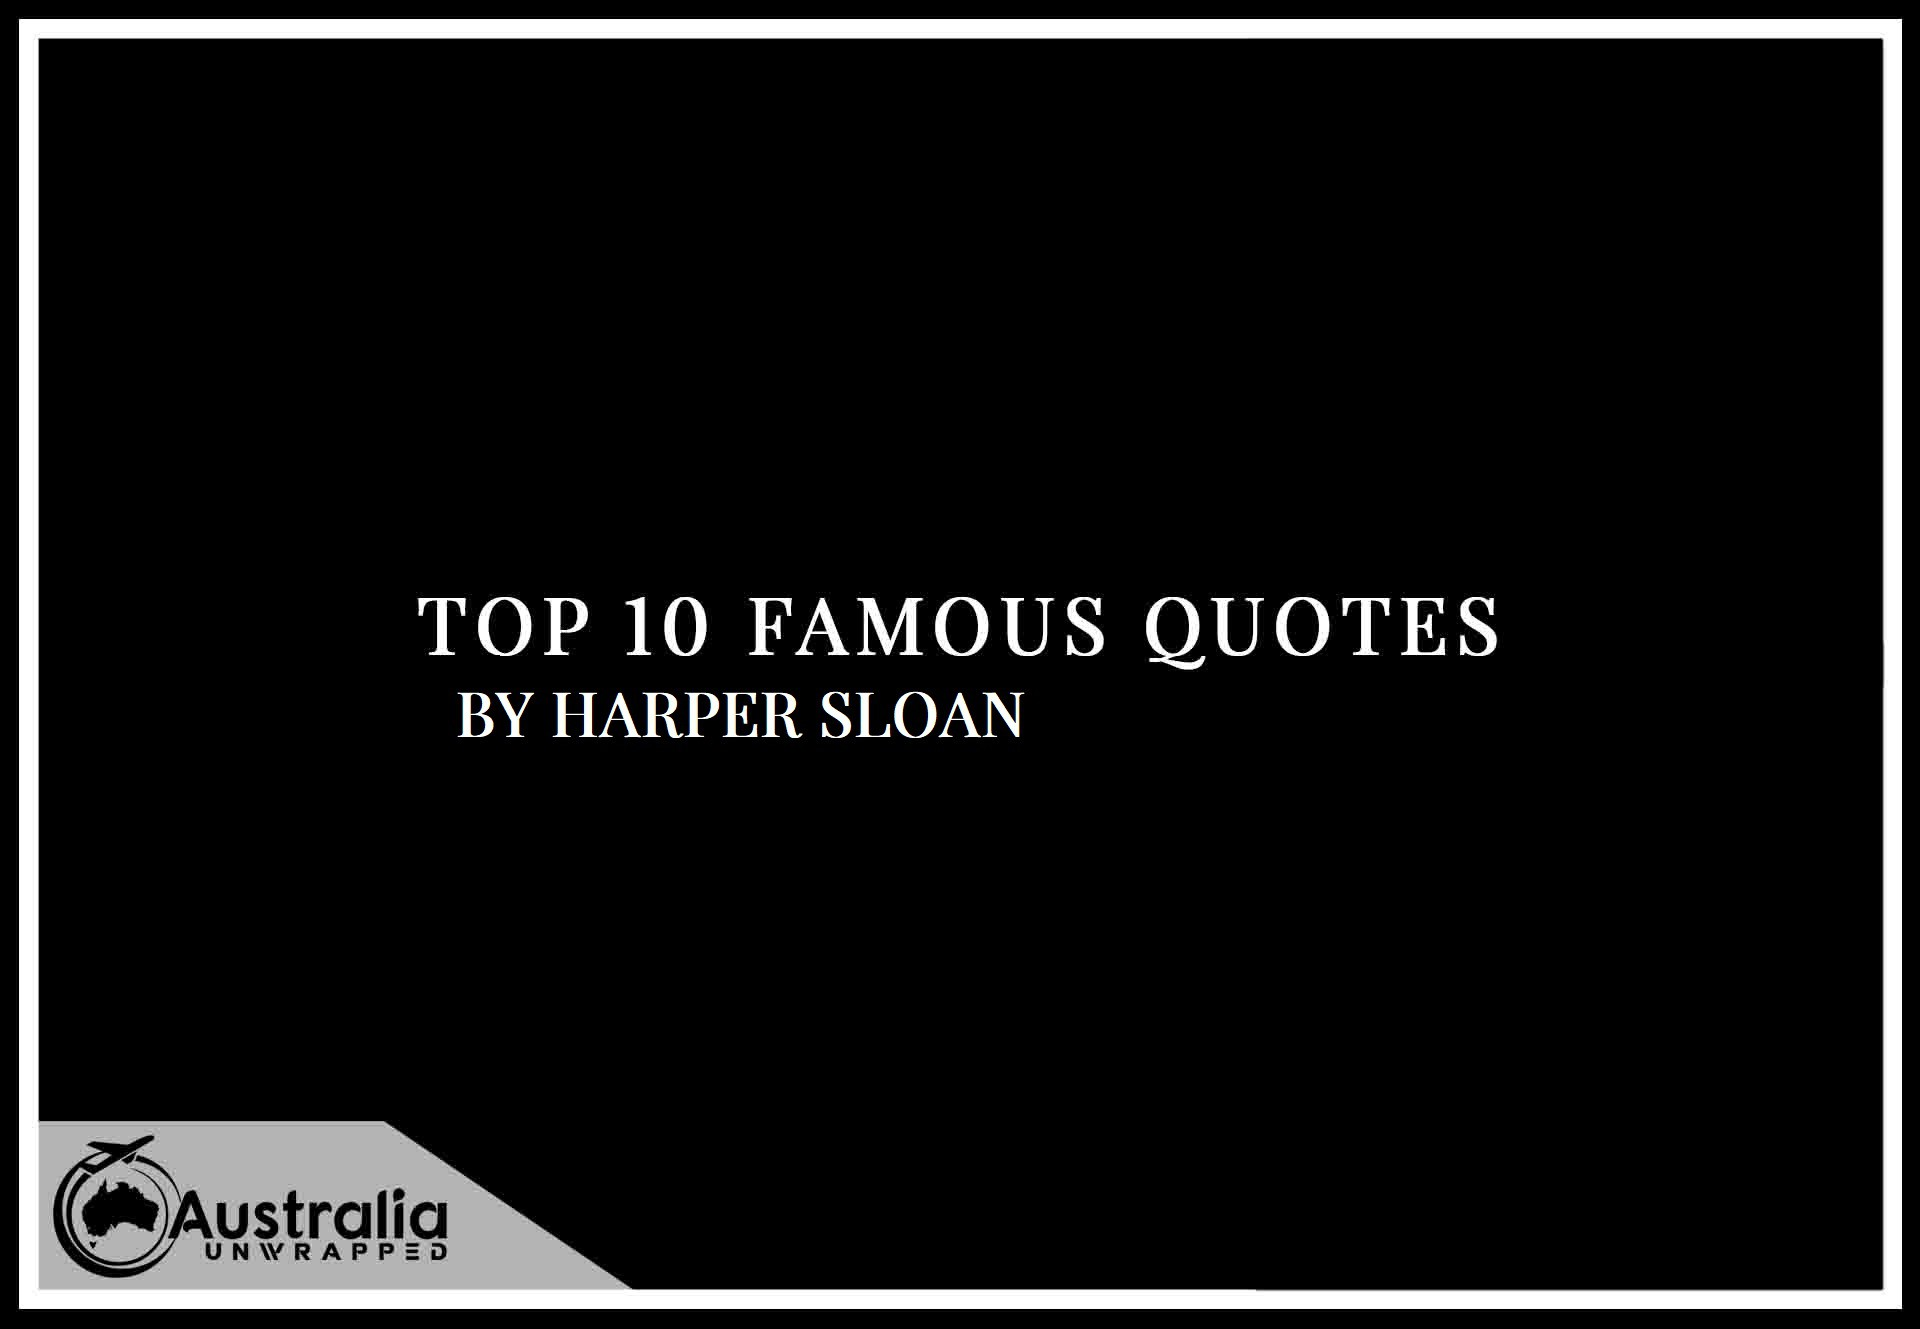 Top 10 Famous Quotes by Author Harper Sloan